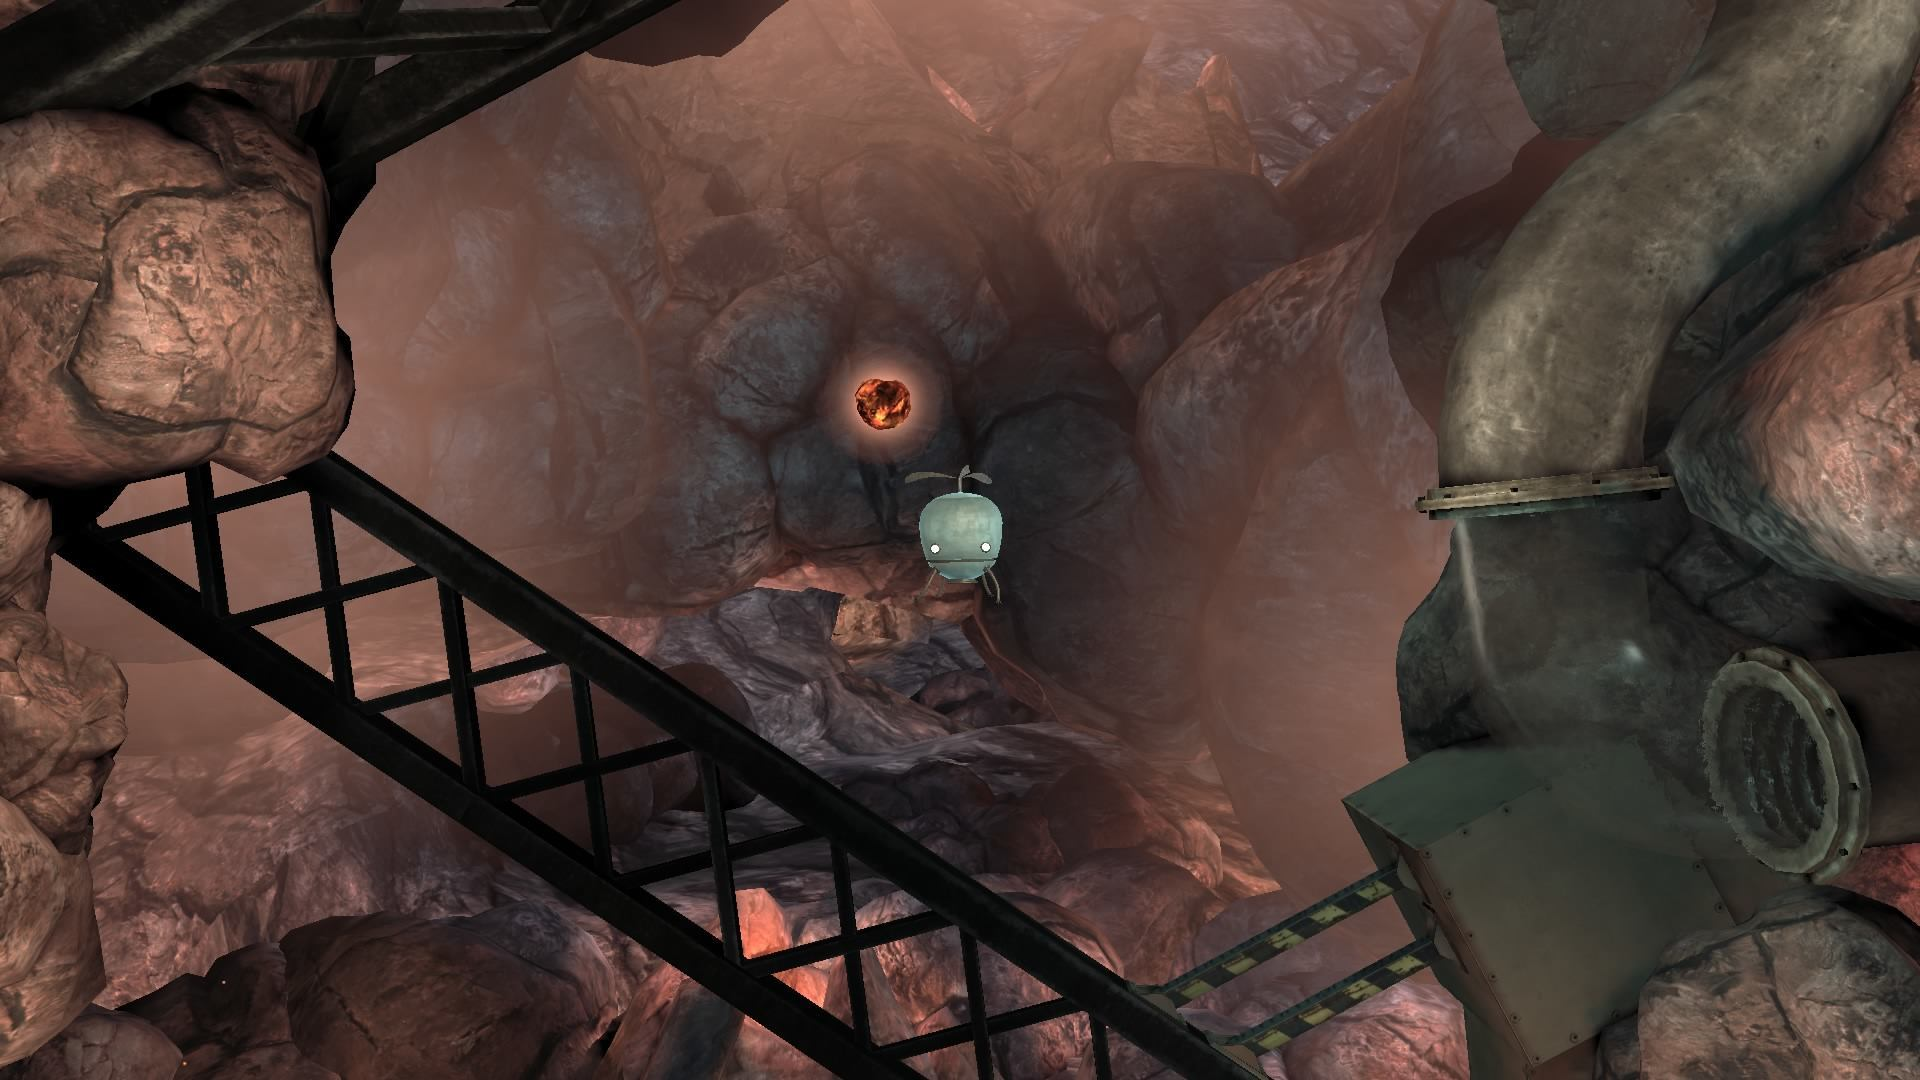 The little helicopter robot is stuck in a mechanical cave.